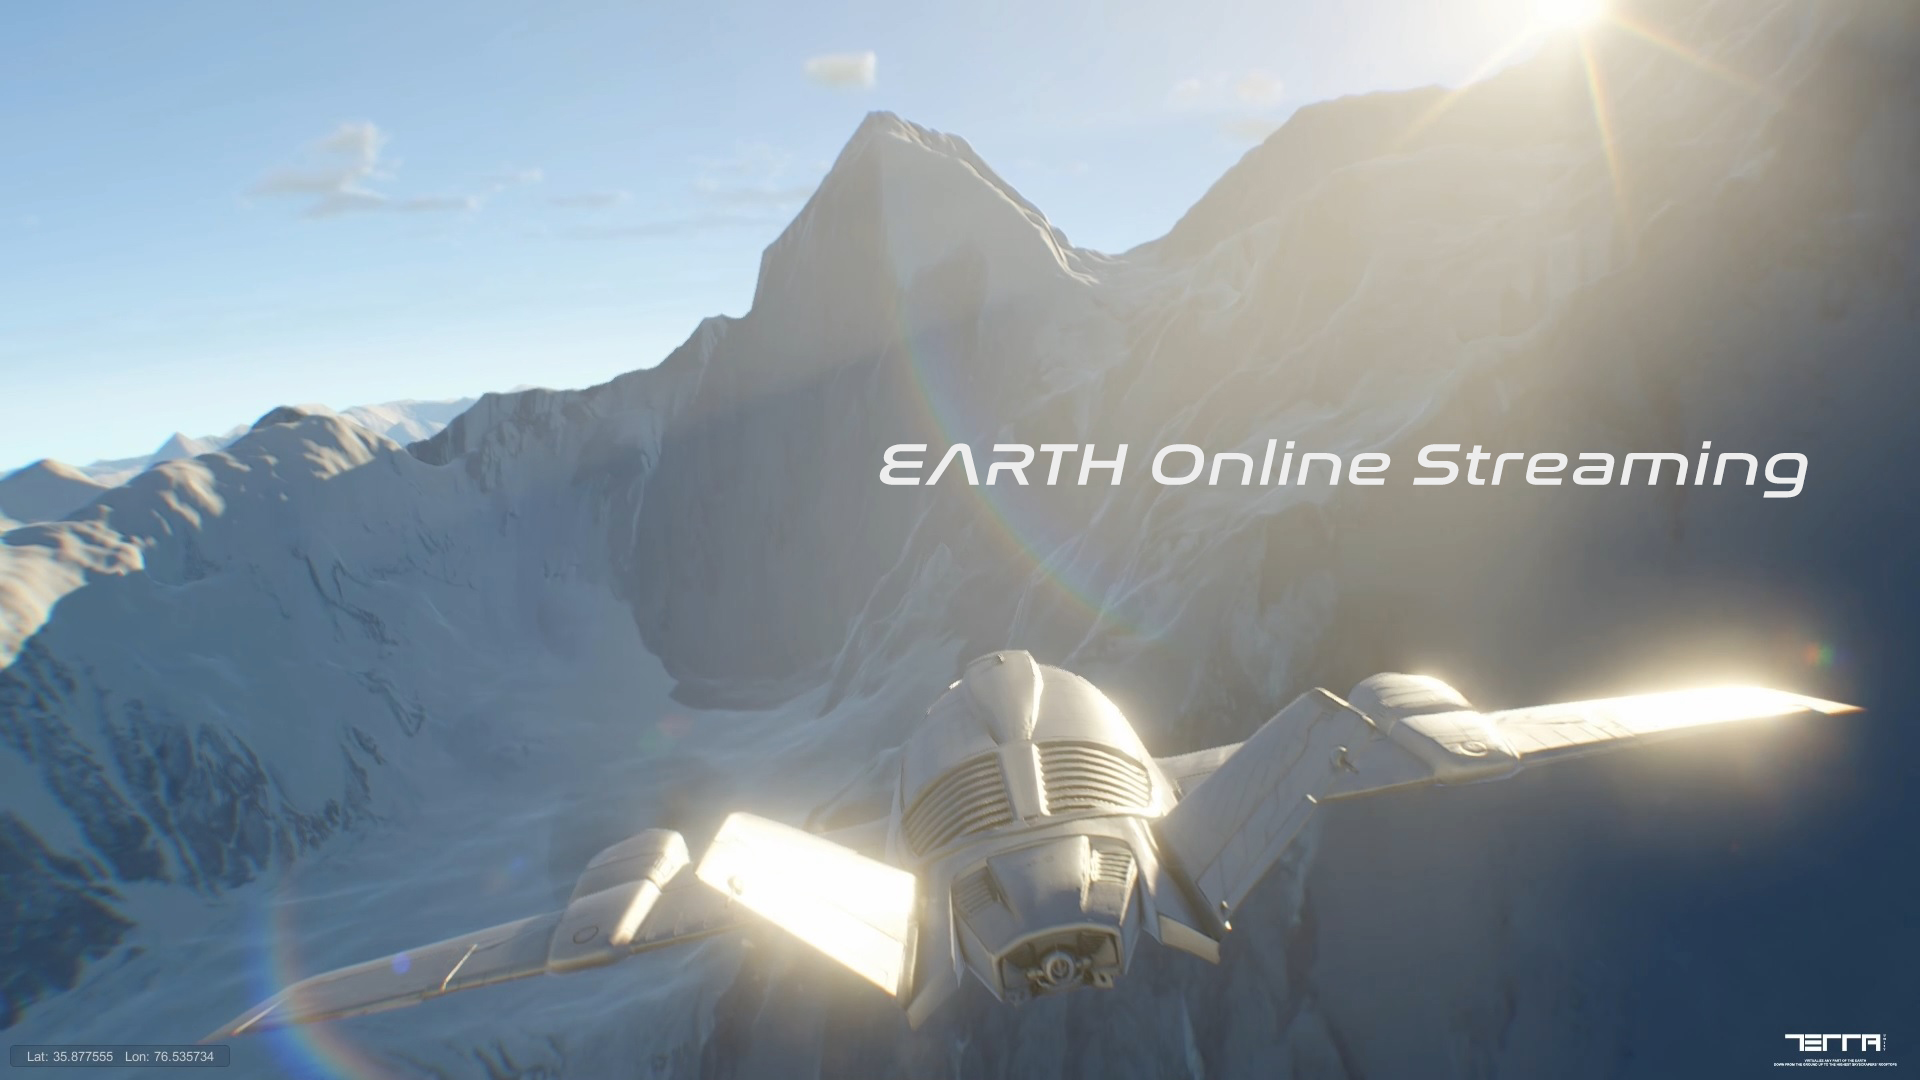 Released Terraland 3 Streaming Huge Real World Custom Terrains High Definition Video Of Earth To Be Streamed Online